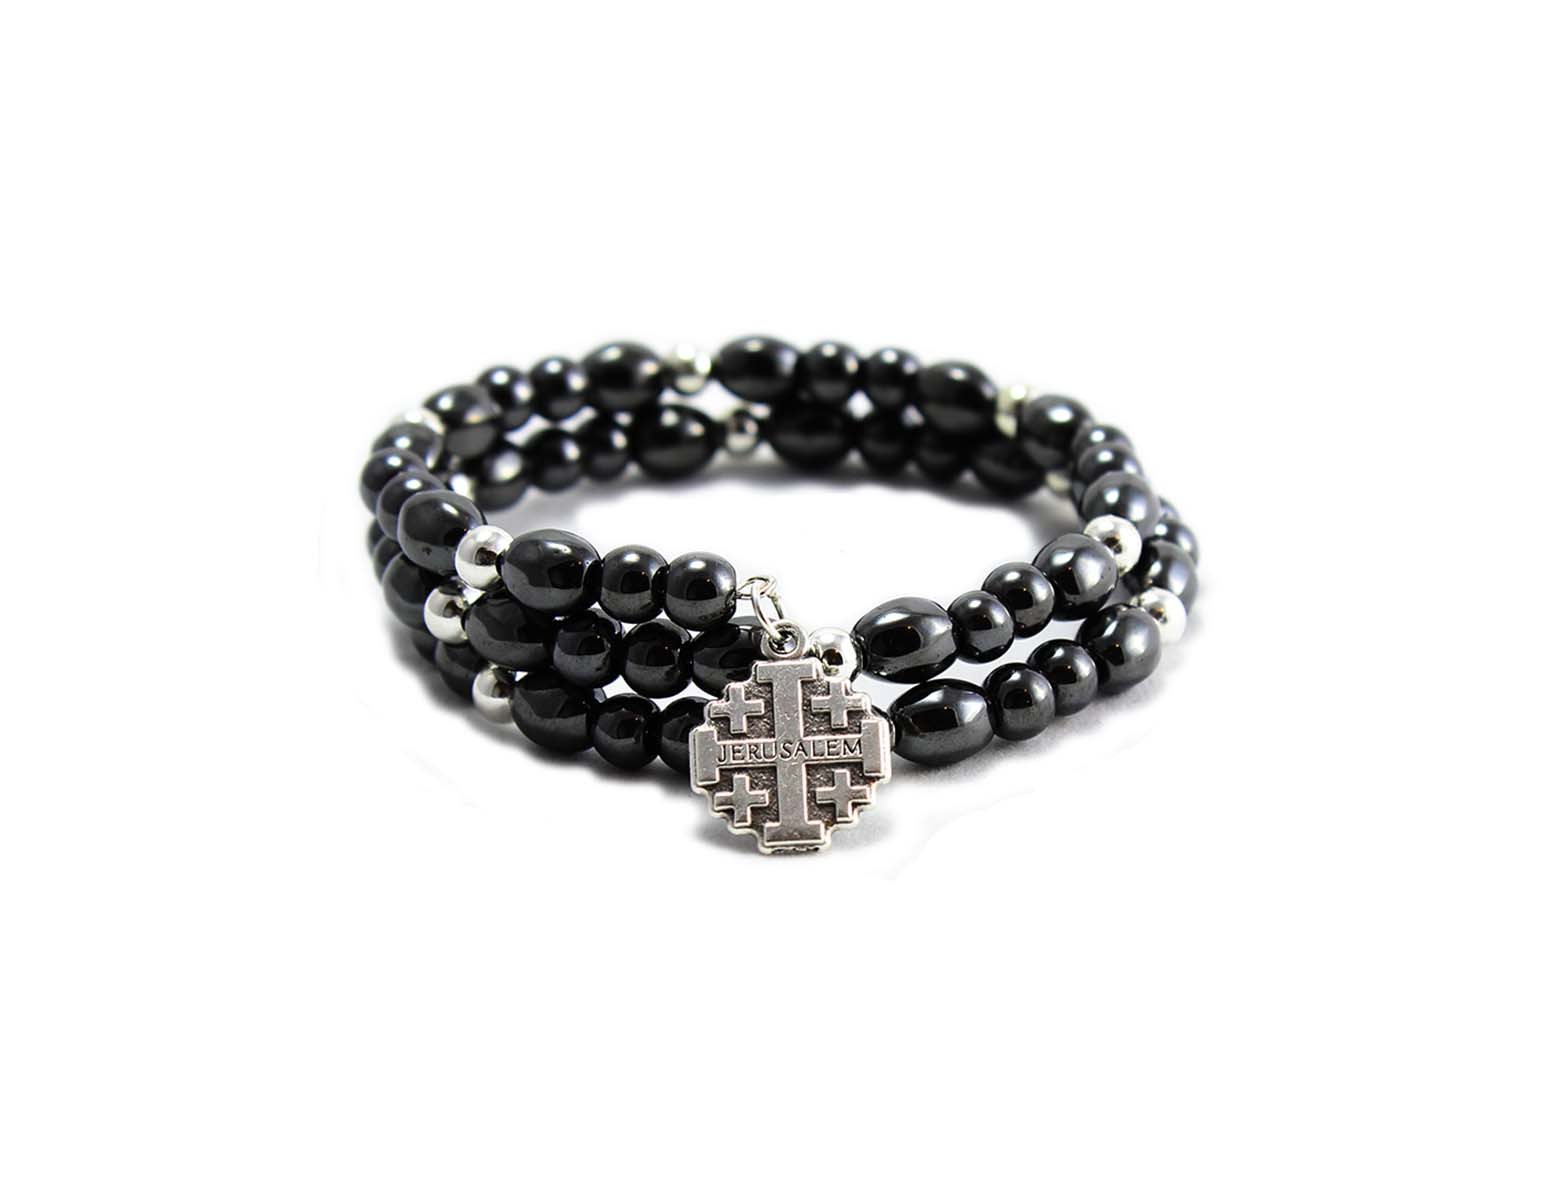 Bethlehem Handmade Hemitate Bracelet with Cross